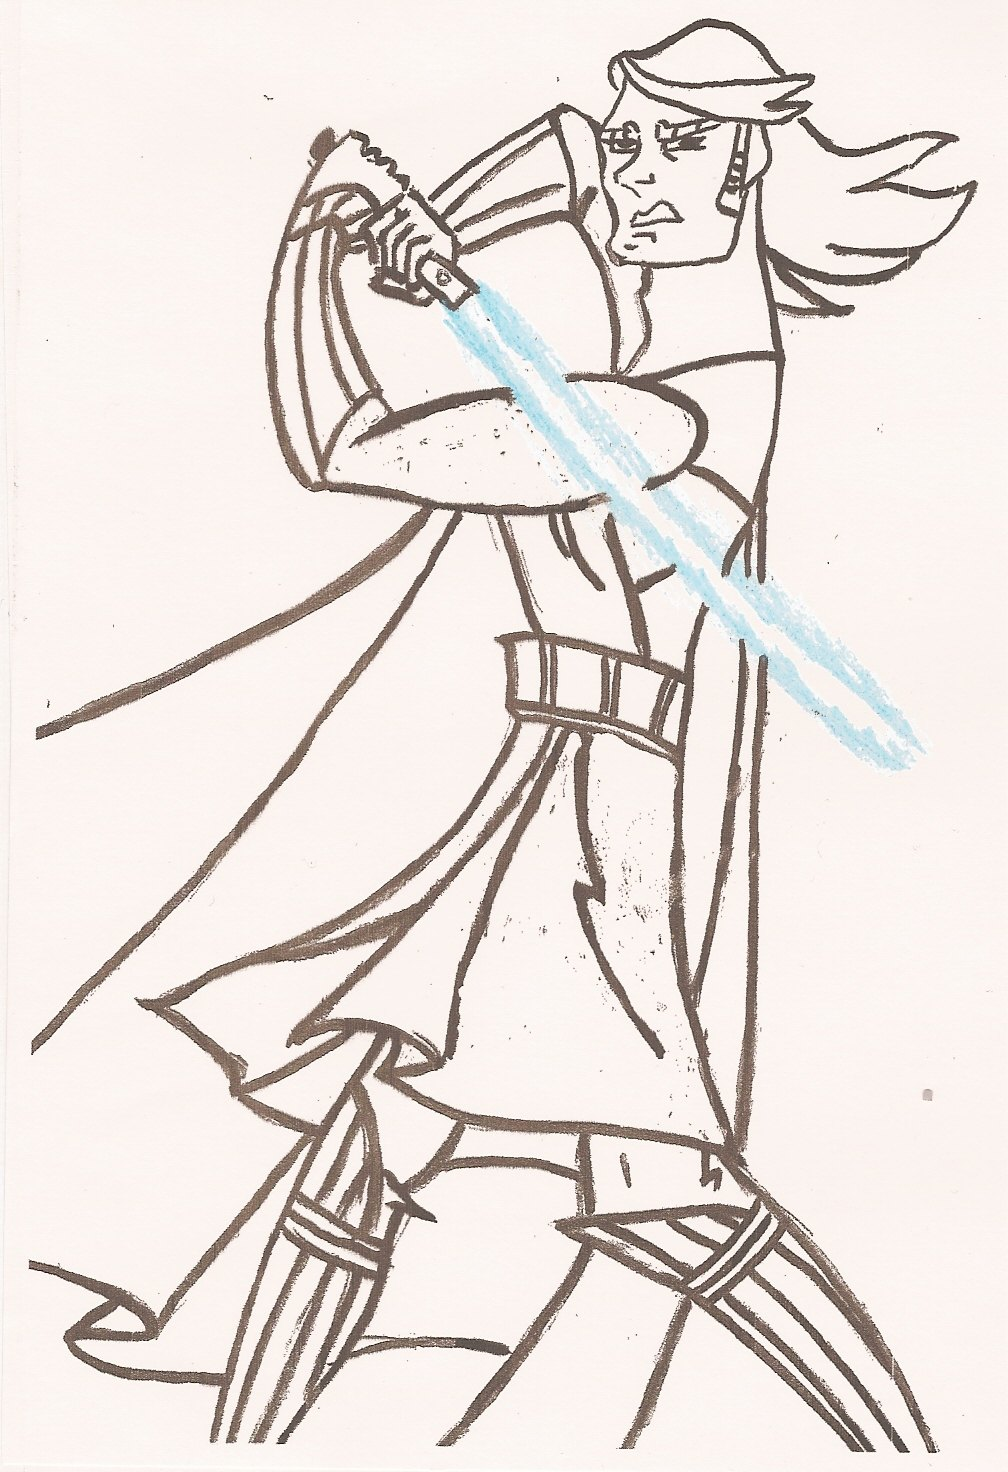 Photo 2 - Anakin Skywalker [JenniferC]